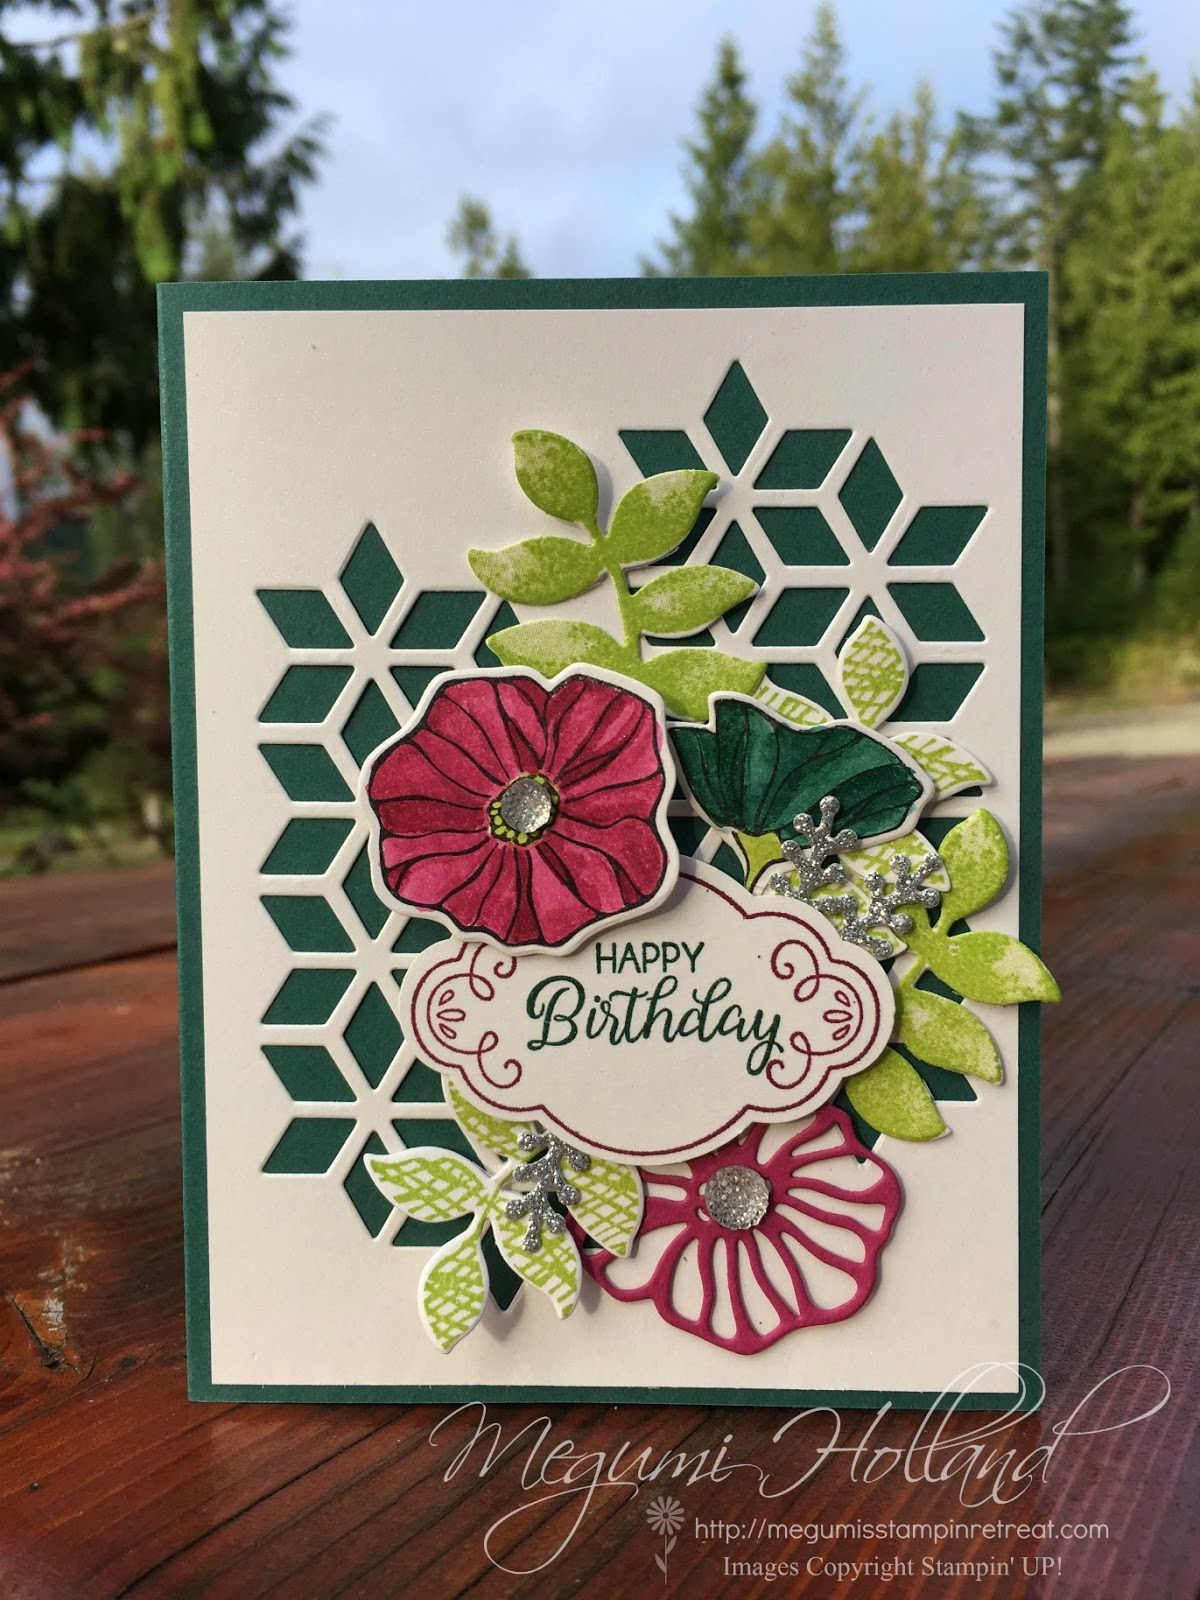 Hello Stampers! I Am Excited To Share This Beautiful Card We Made In My Big  Shot Class This Month Featuring The Oh So Eclectic Stamp Set And The  Eclectic ...